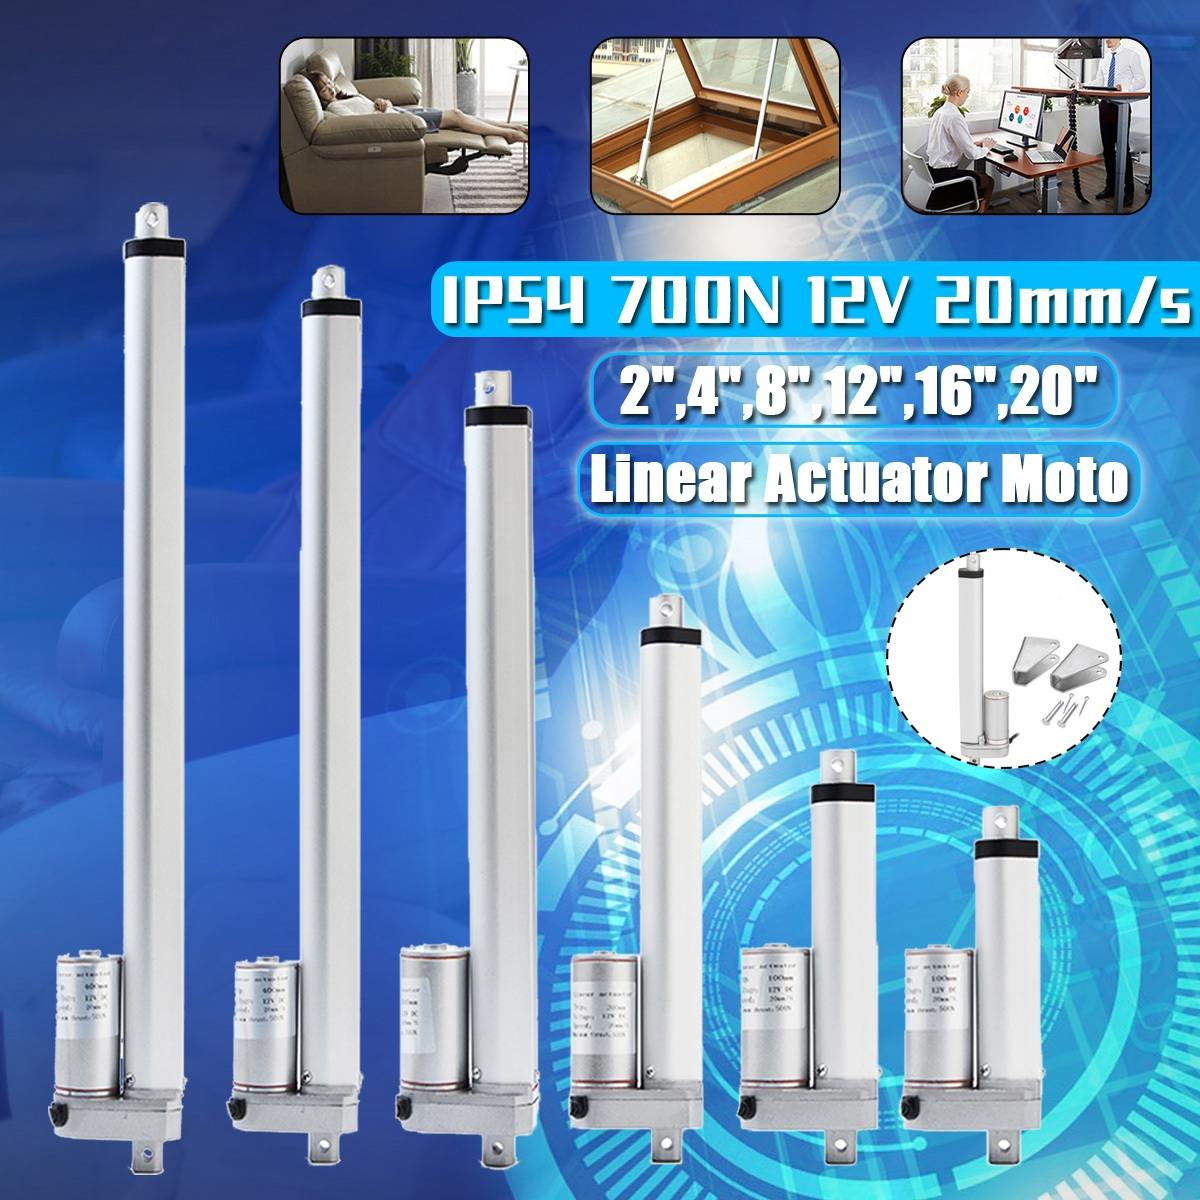 Electric Motor DC 12V Linear Actuator 50-500mm 200N Window Opener 20mm/s For lectric Self Unicycle ScooterElectric Motor DC 12V Linear Actuator 50-500mm 200N Window Opener 20mm/s For lectric Self Unicycle Scooter